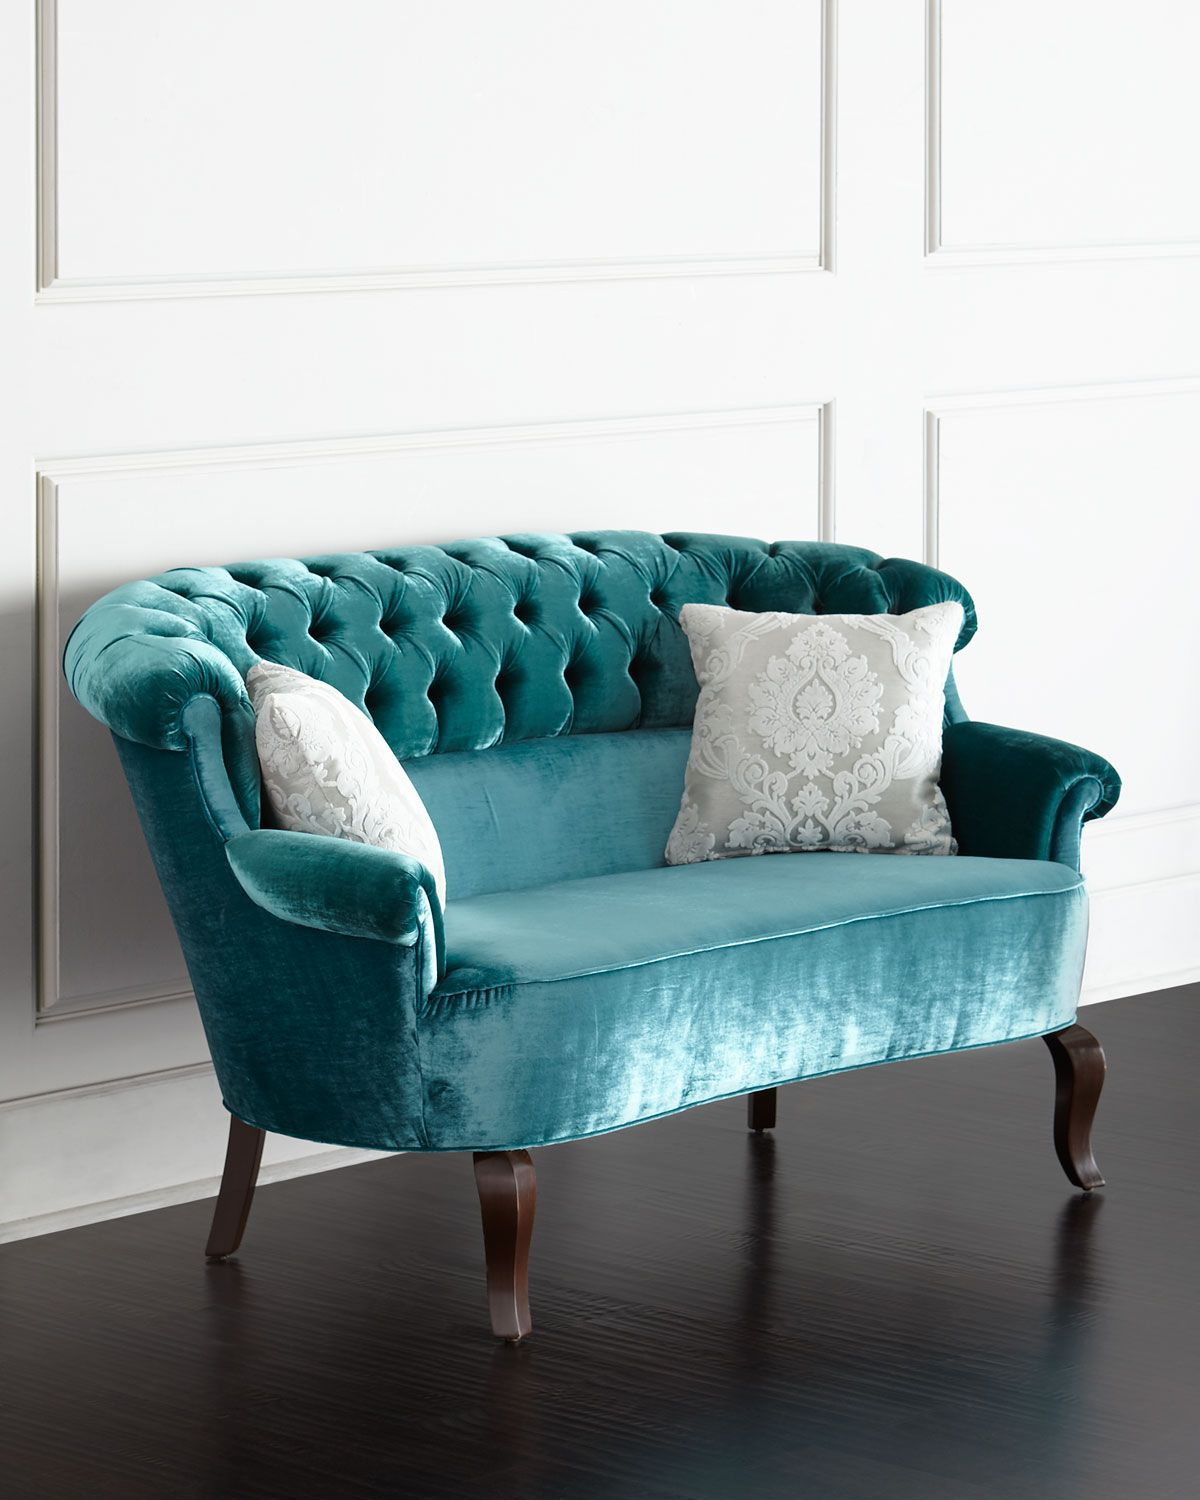 harlow cuddle chair potty chairs for toddlers lulu tufted settee green haute house color diseño